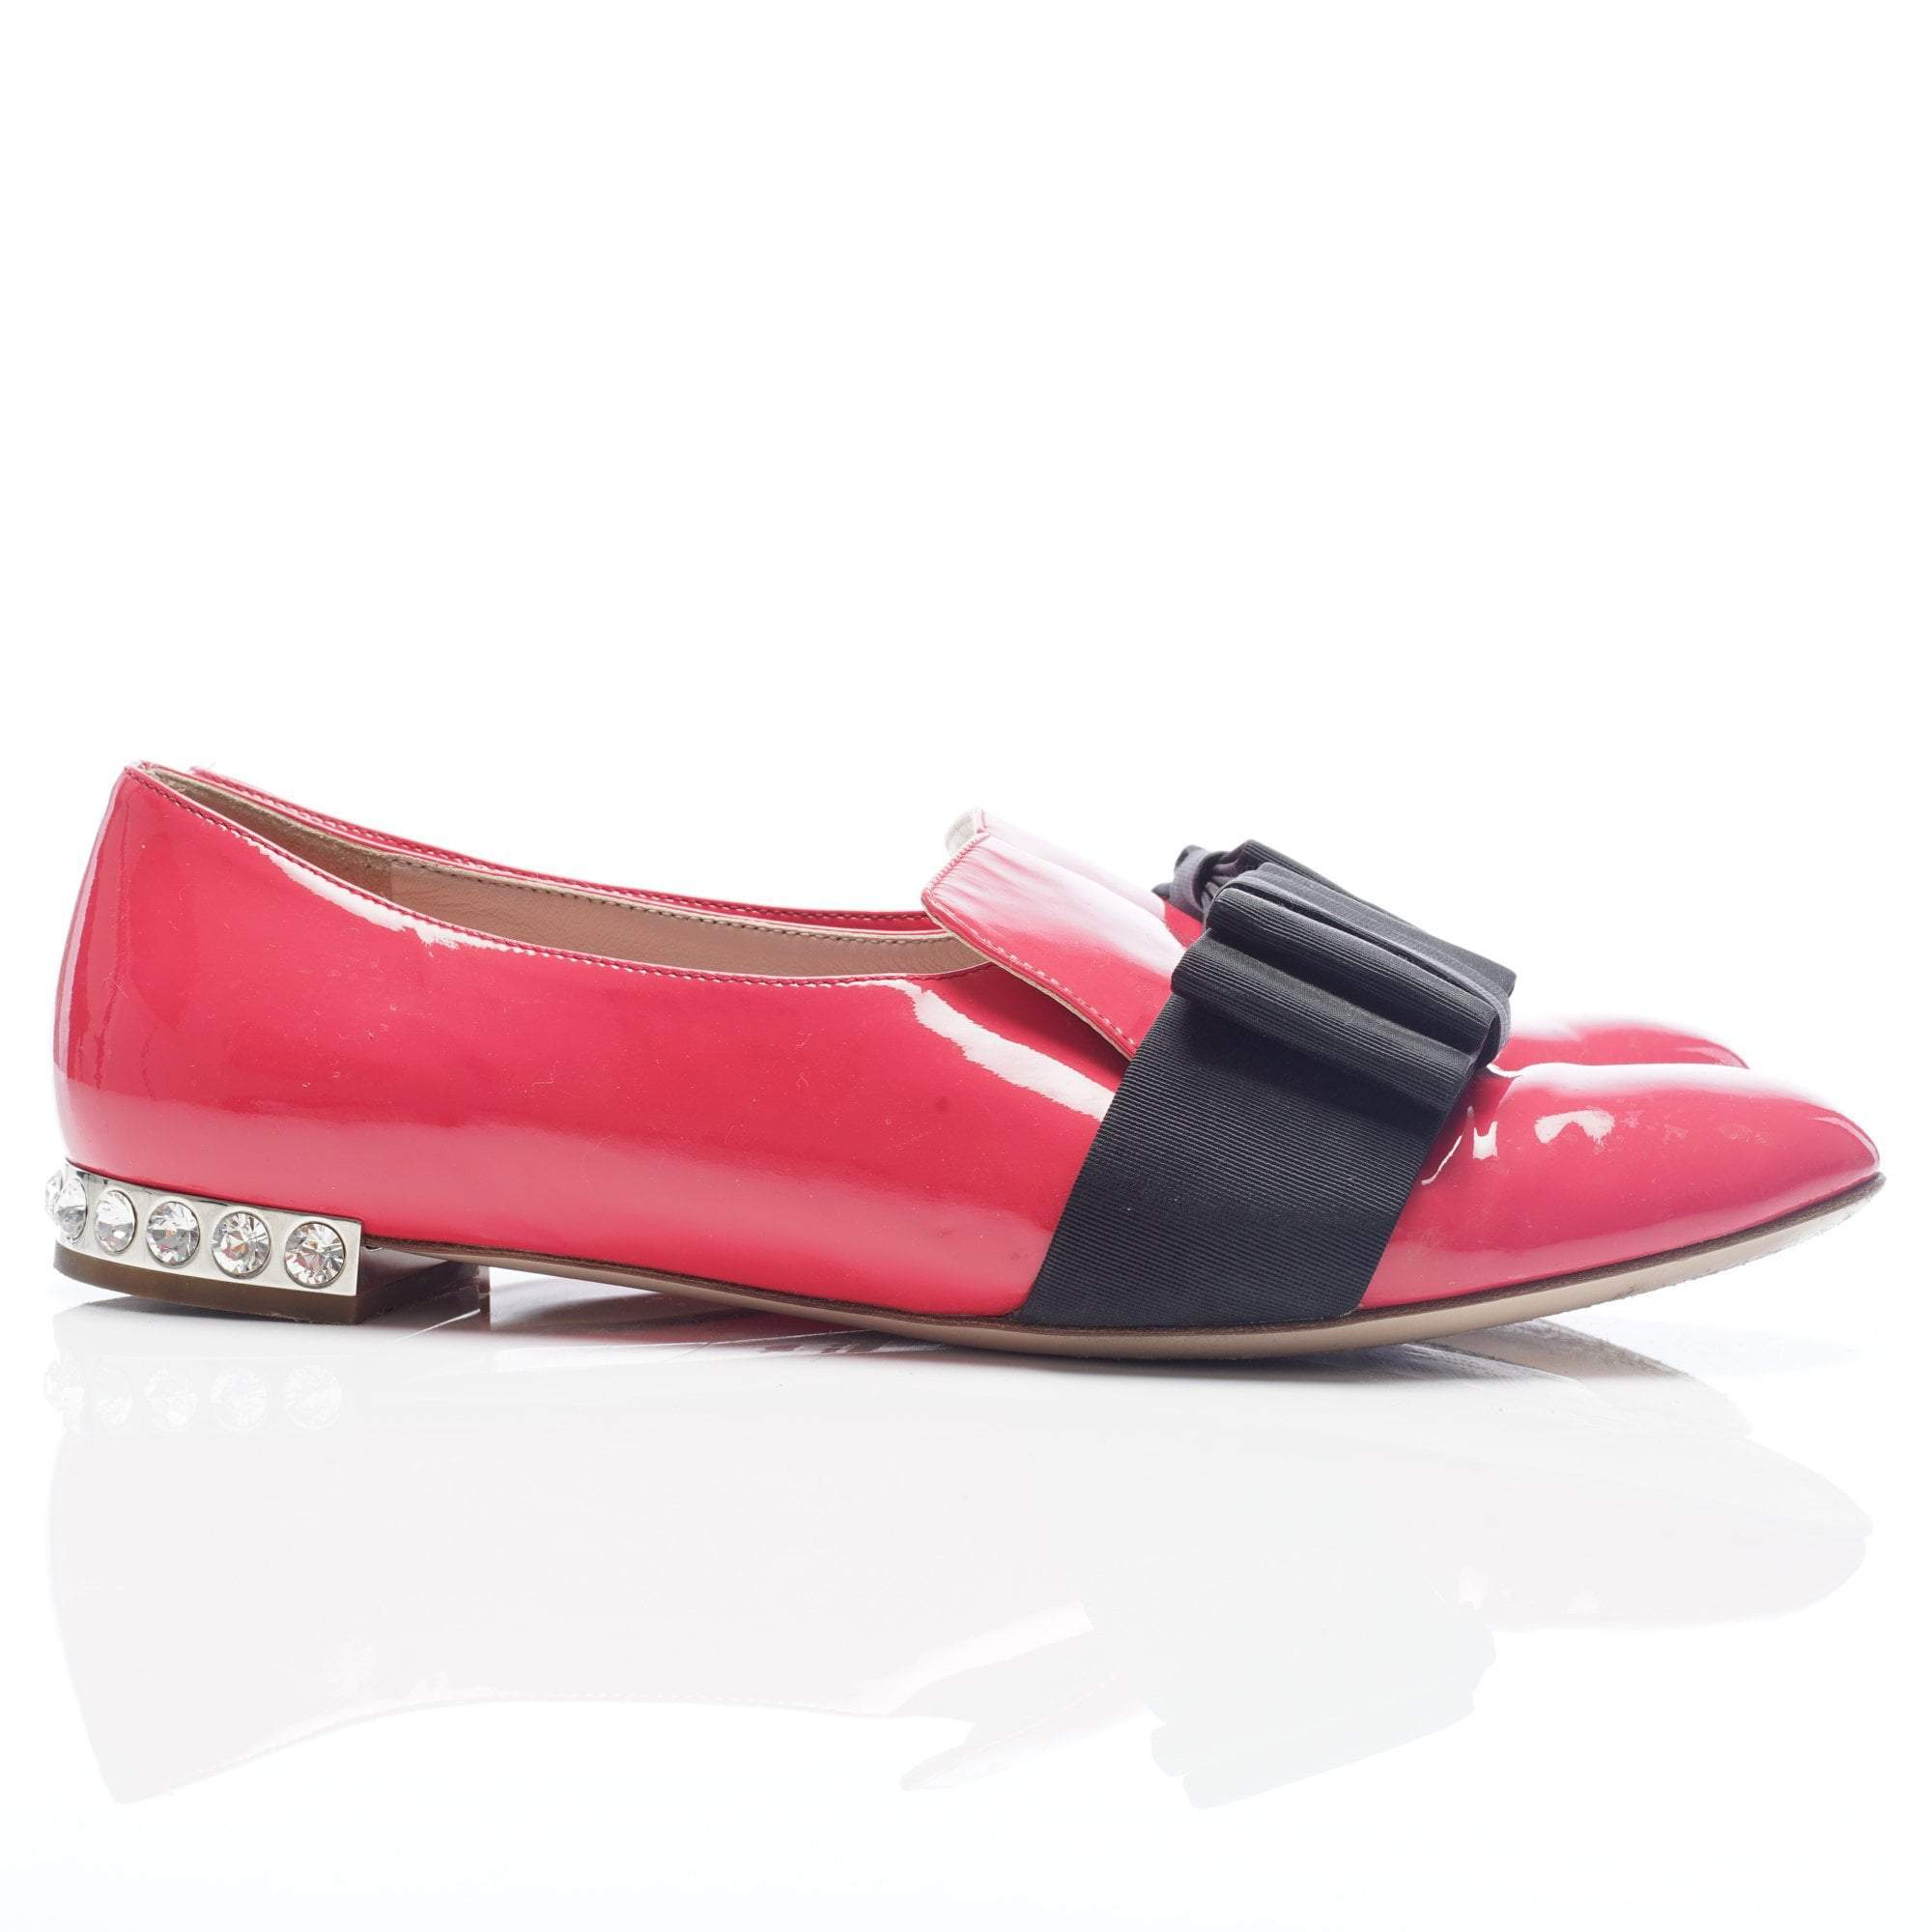 Miu Miu Pink Loafer With Ribbed Satin Bow